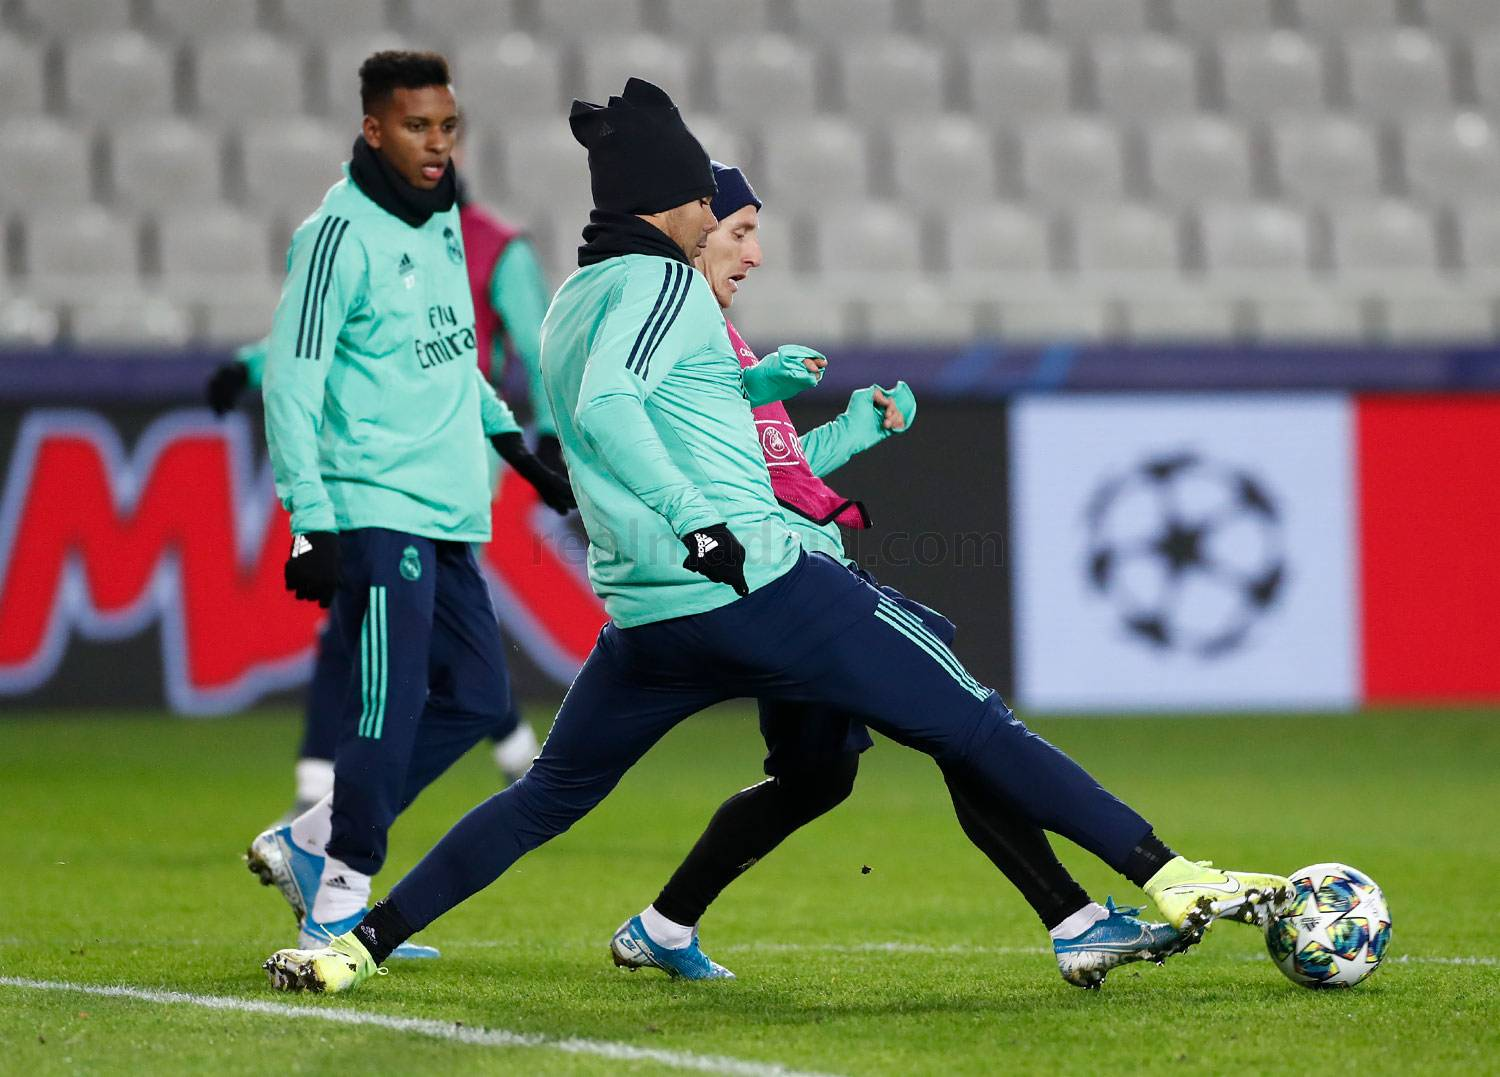 Real Madrid - Entrenamiento del Real Madrid en Brujas - 10-12-2019